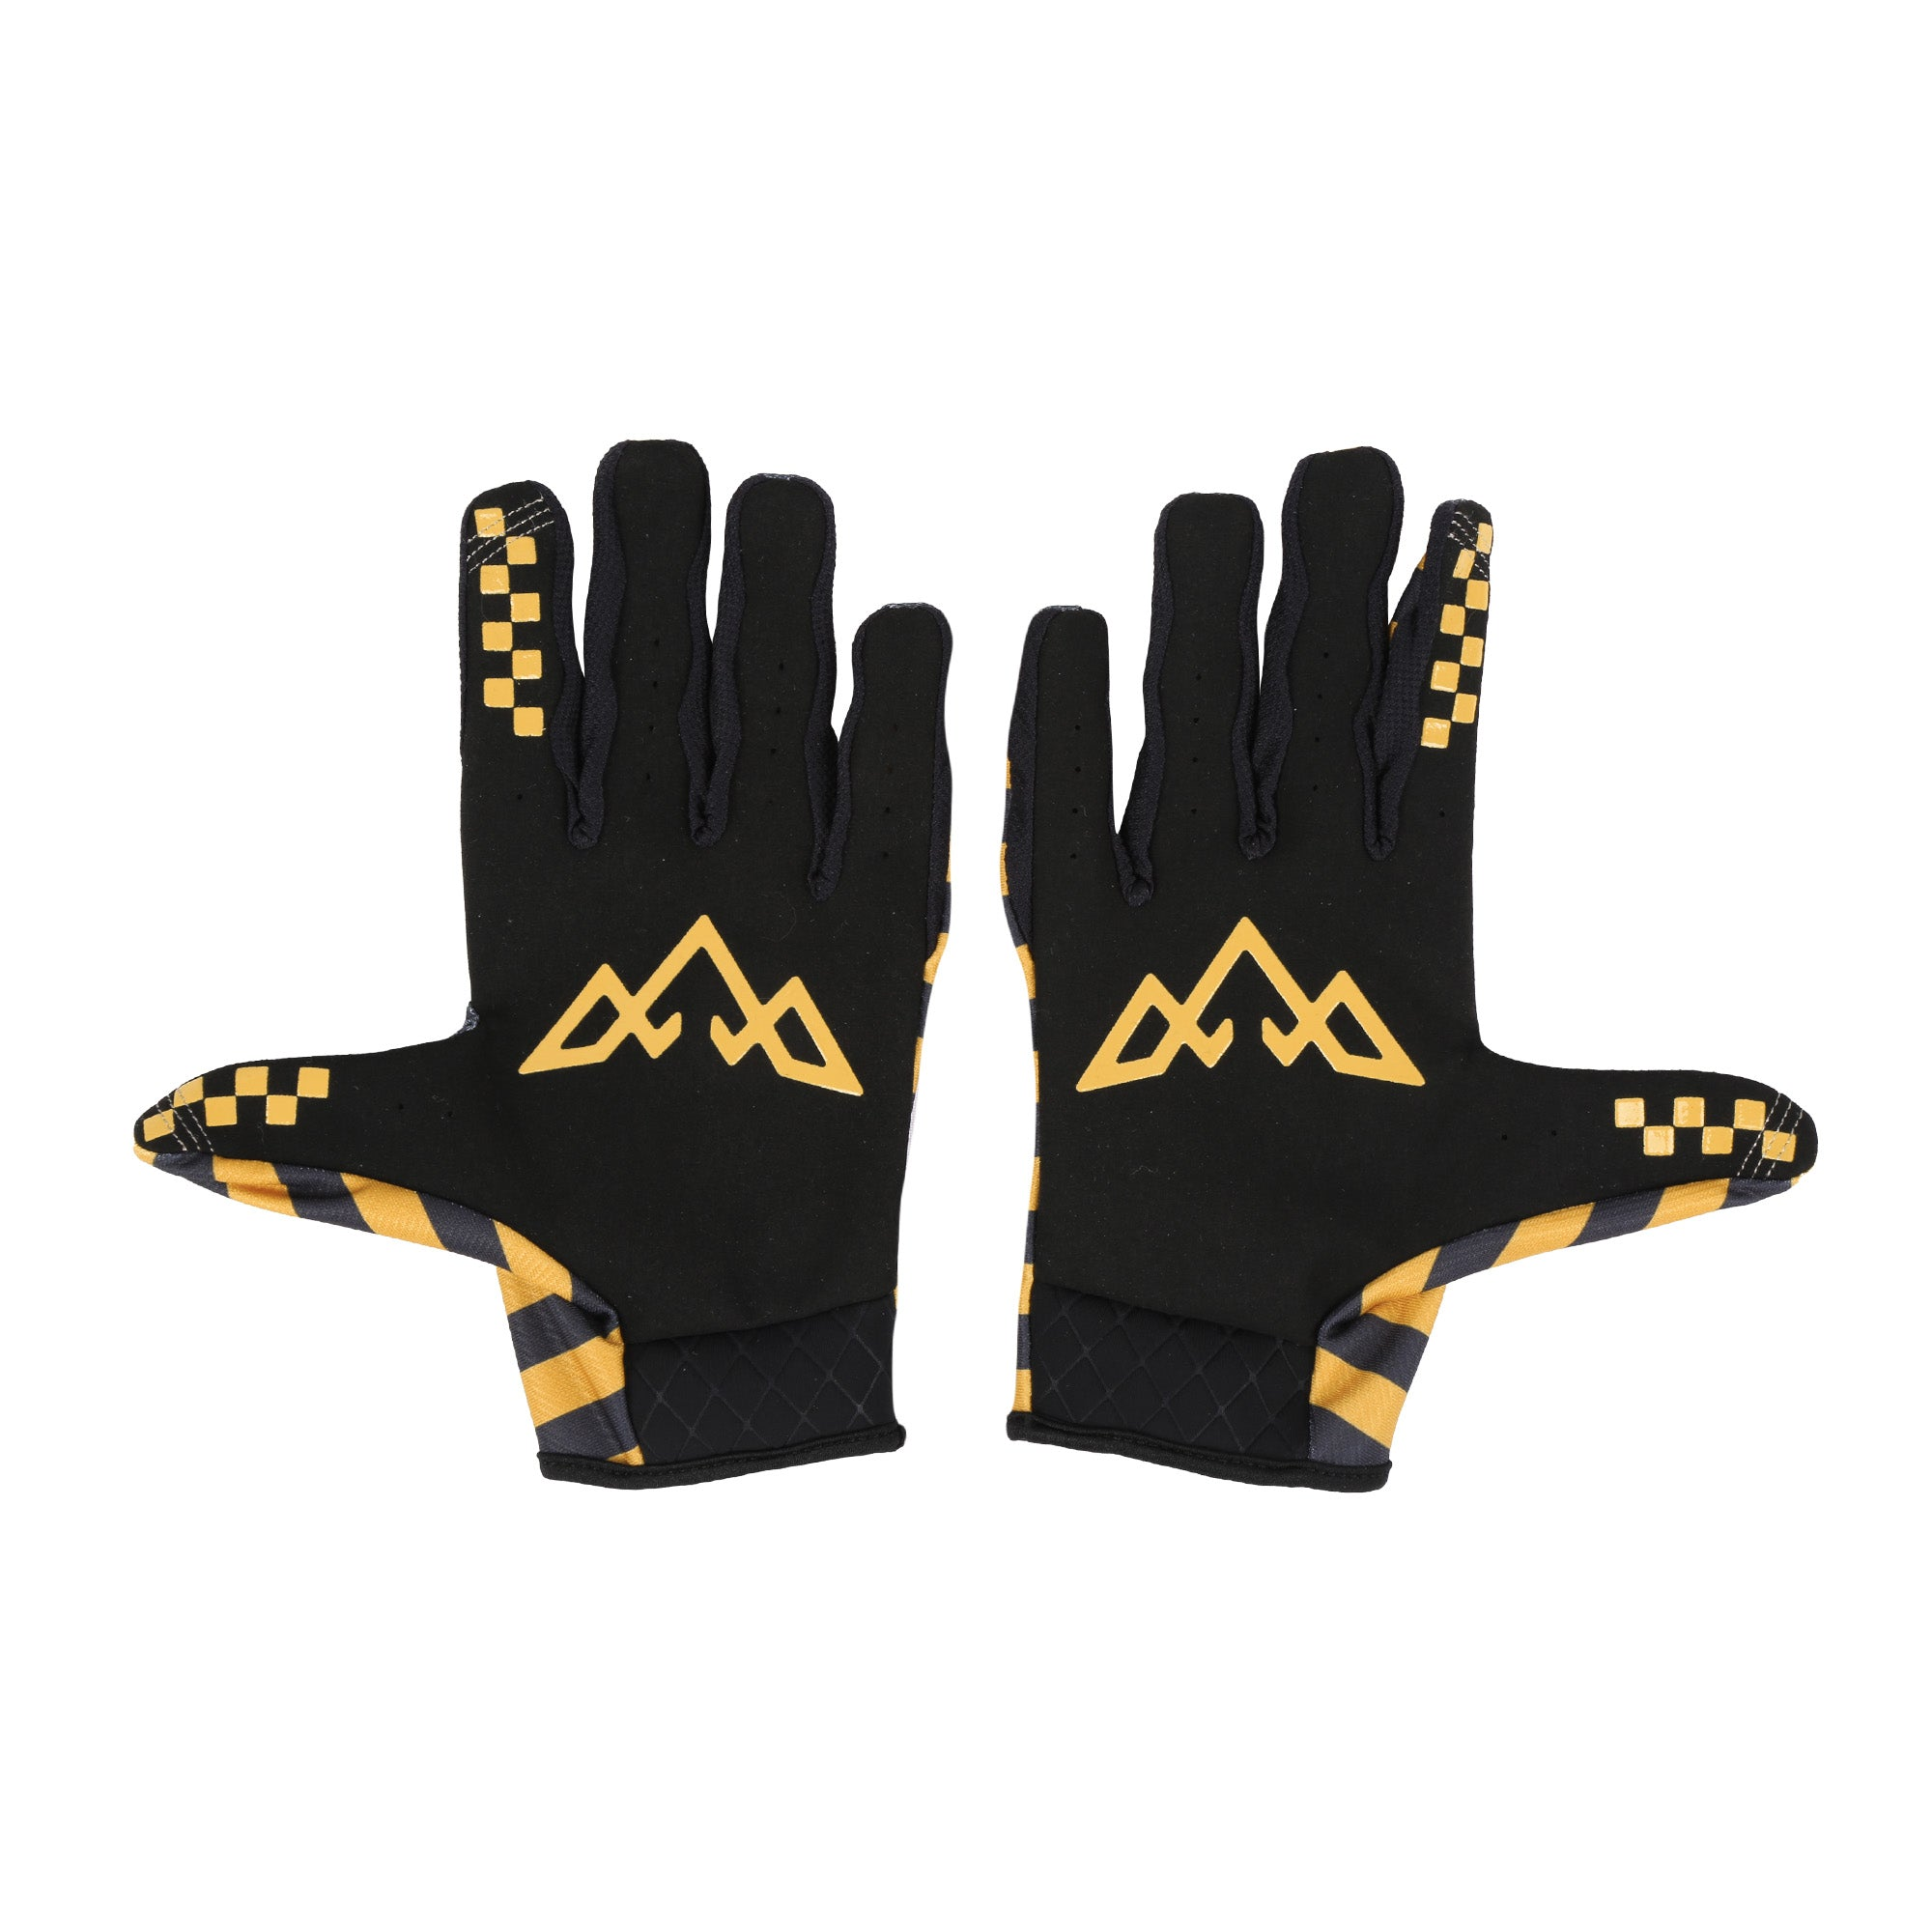 FumbleBee Double Digits MTB Gloves